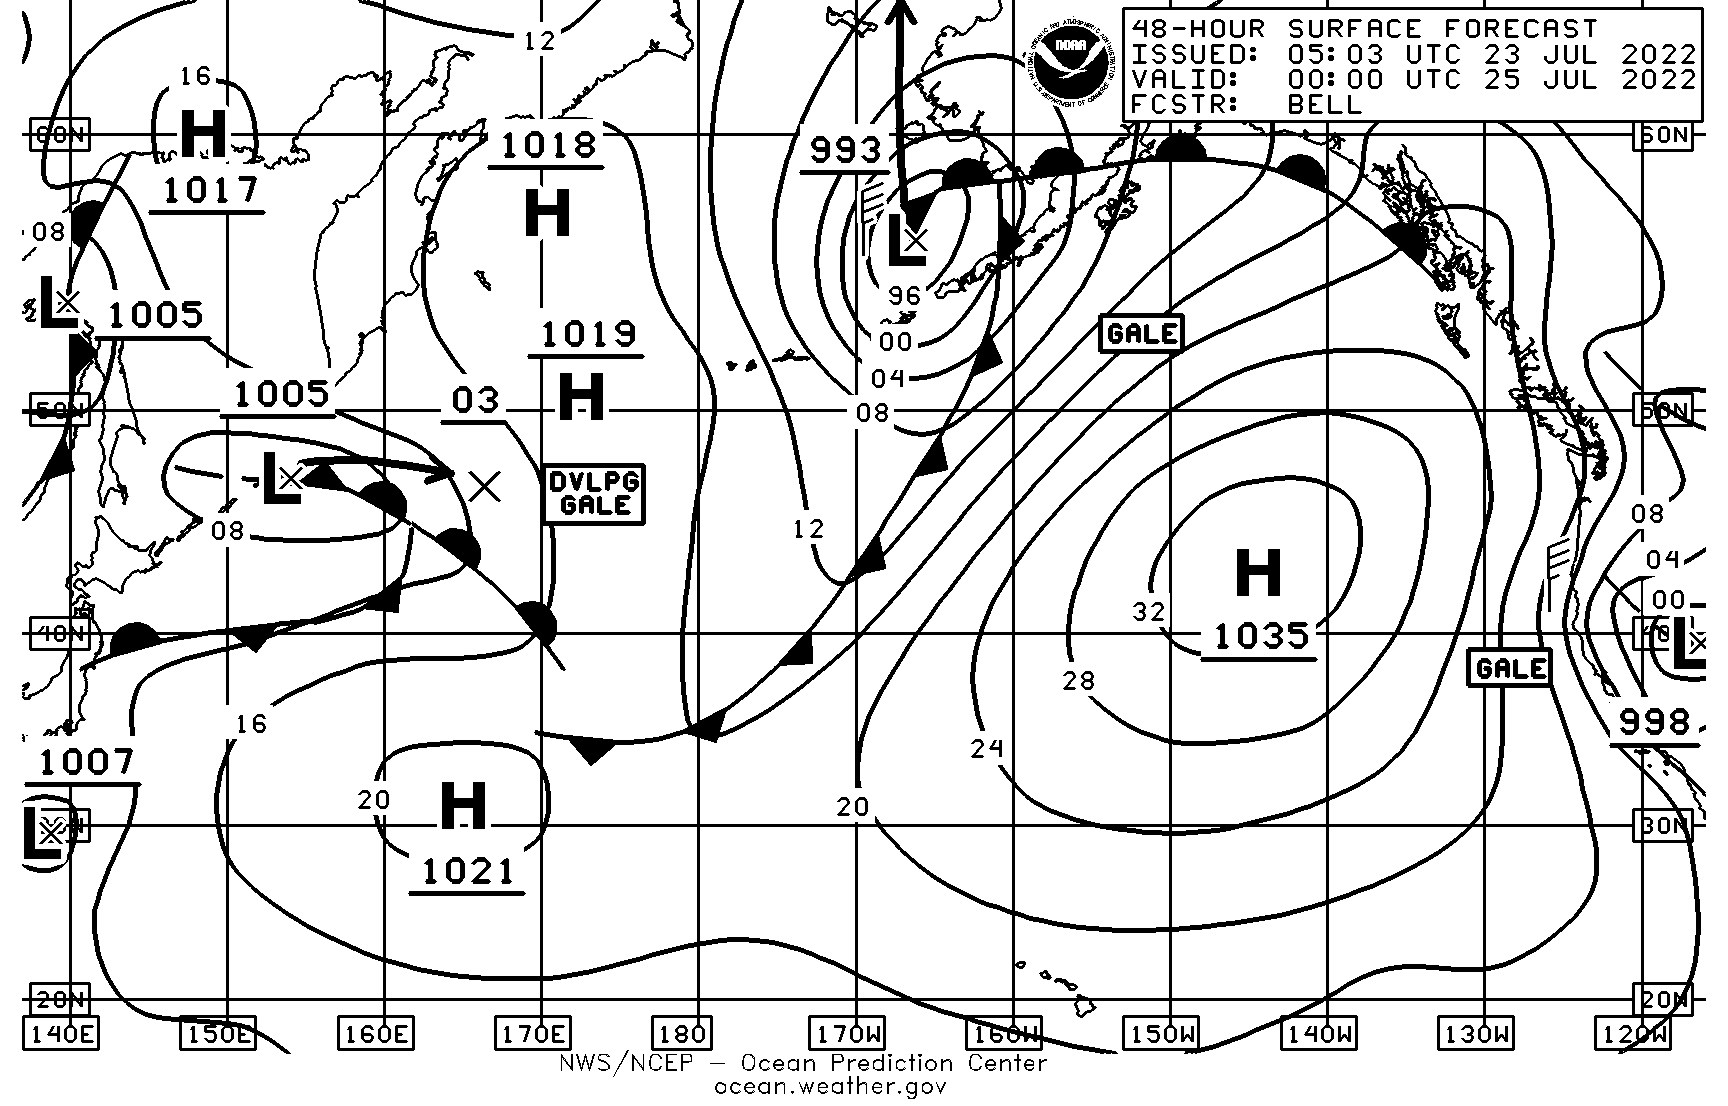 NWS Surface Analysis / Forecast Fax Charts